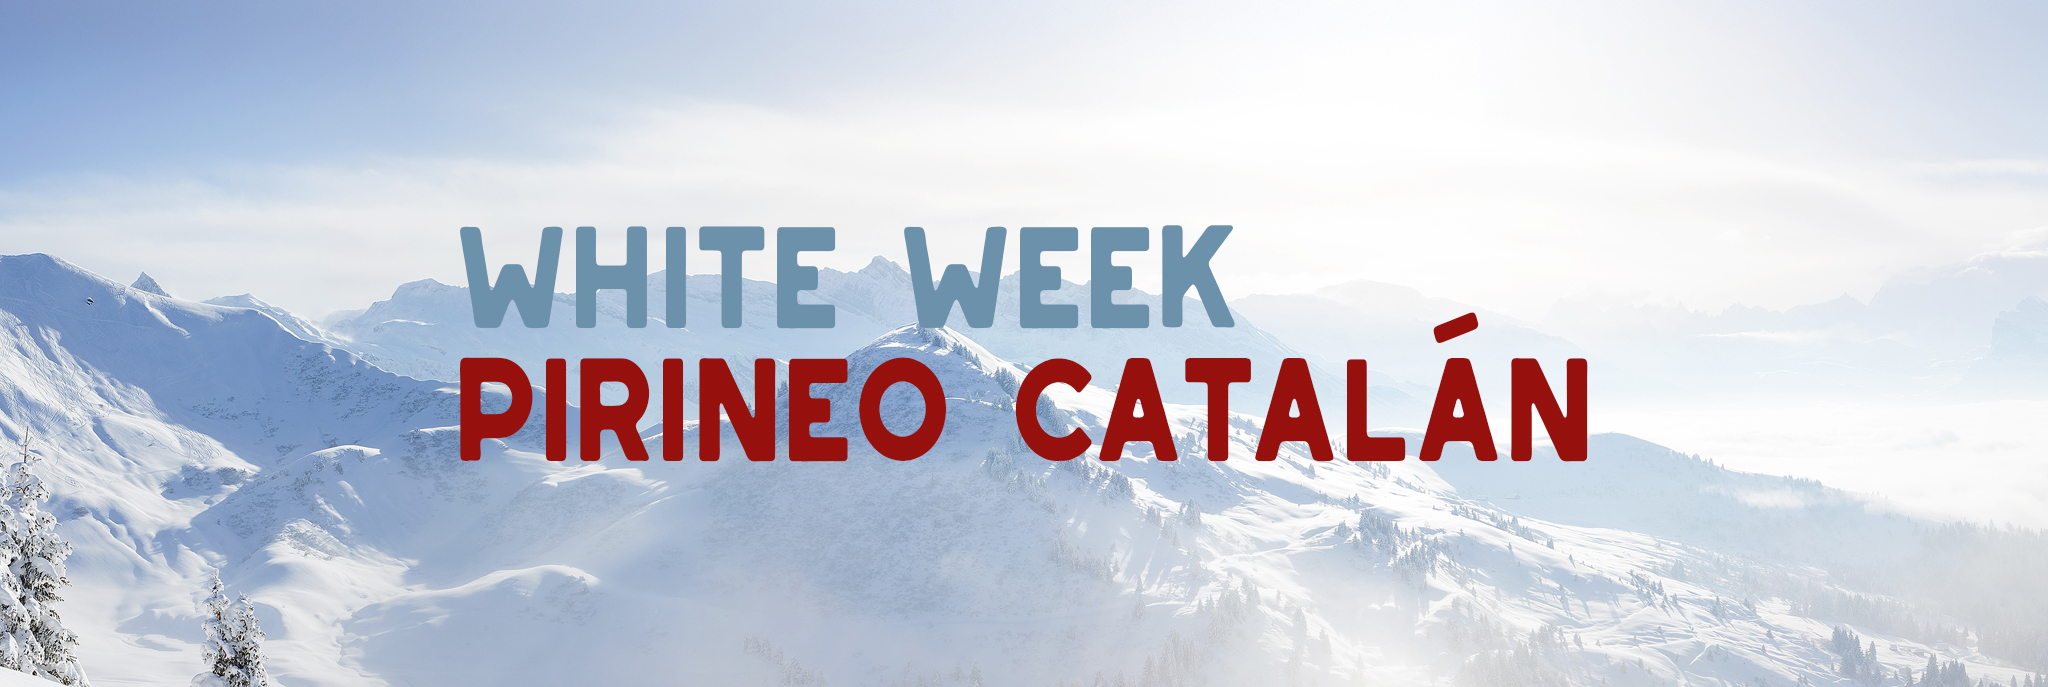 white-week-catalan